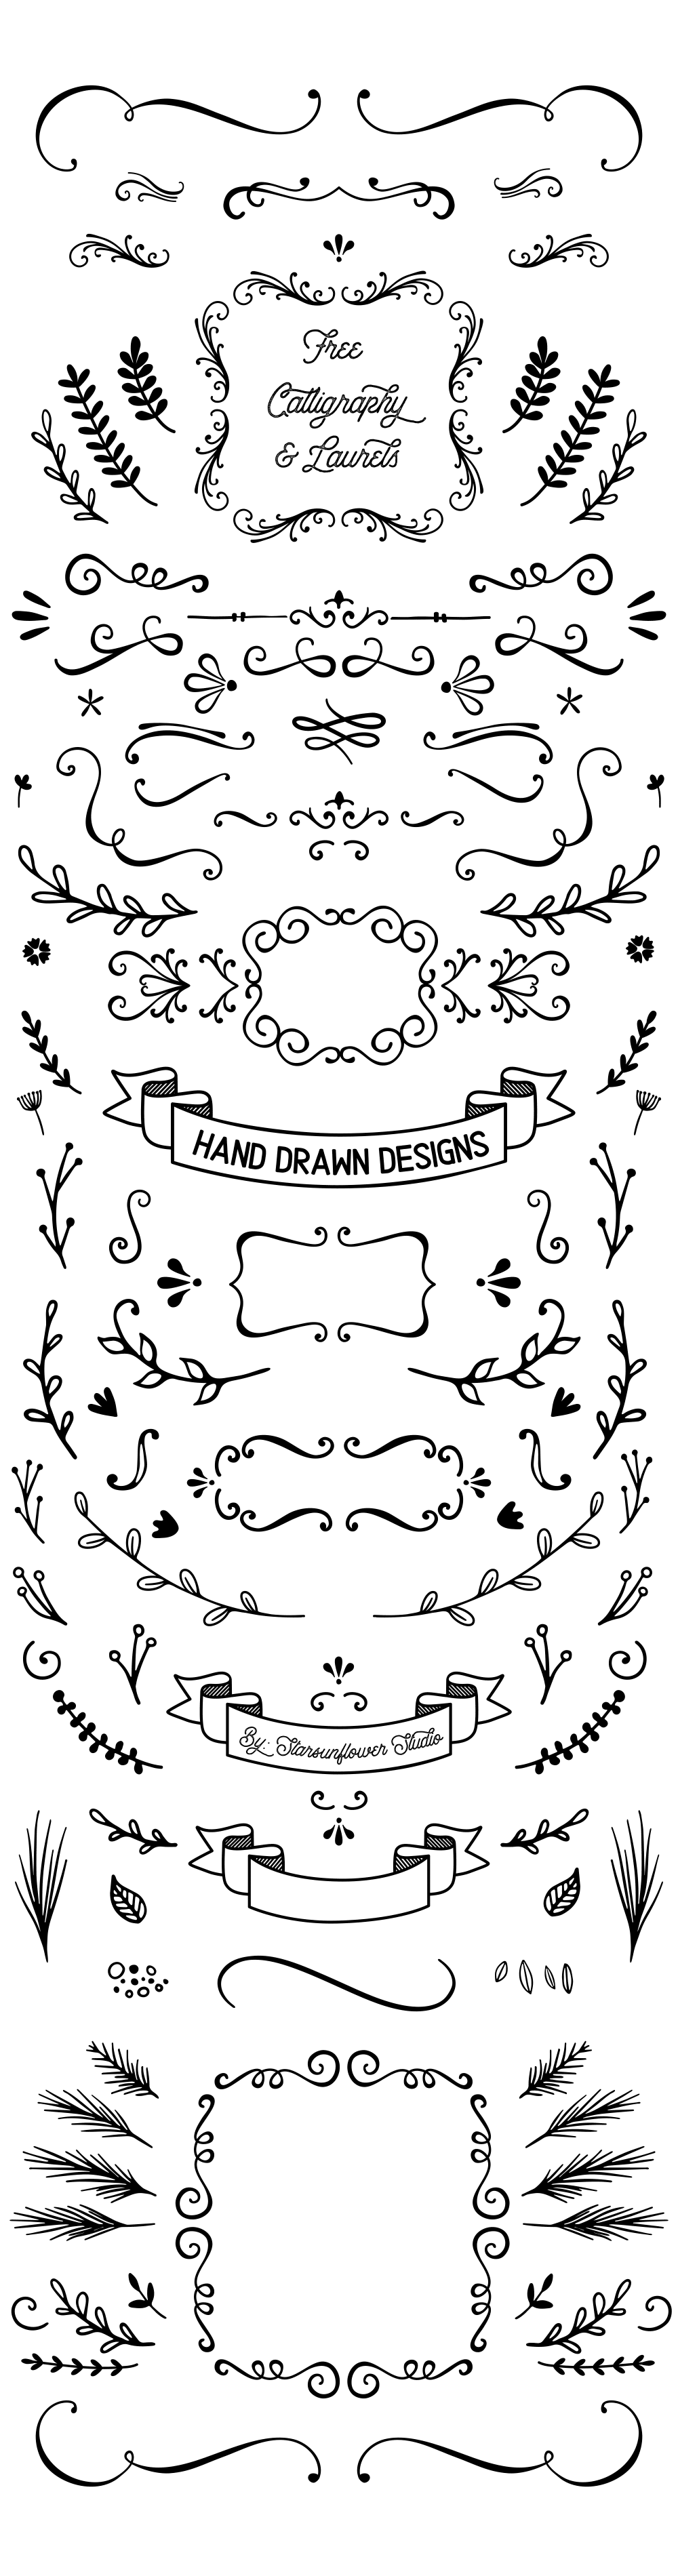 Free Doodle Frames, Laurels and Calligraphy Shapes